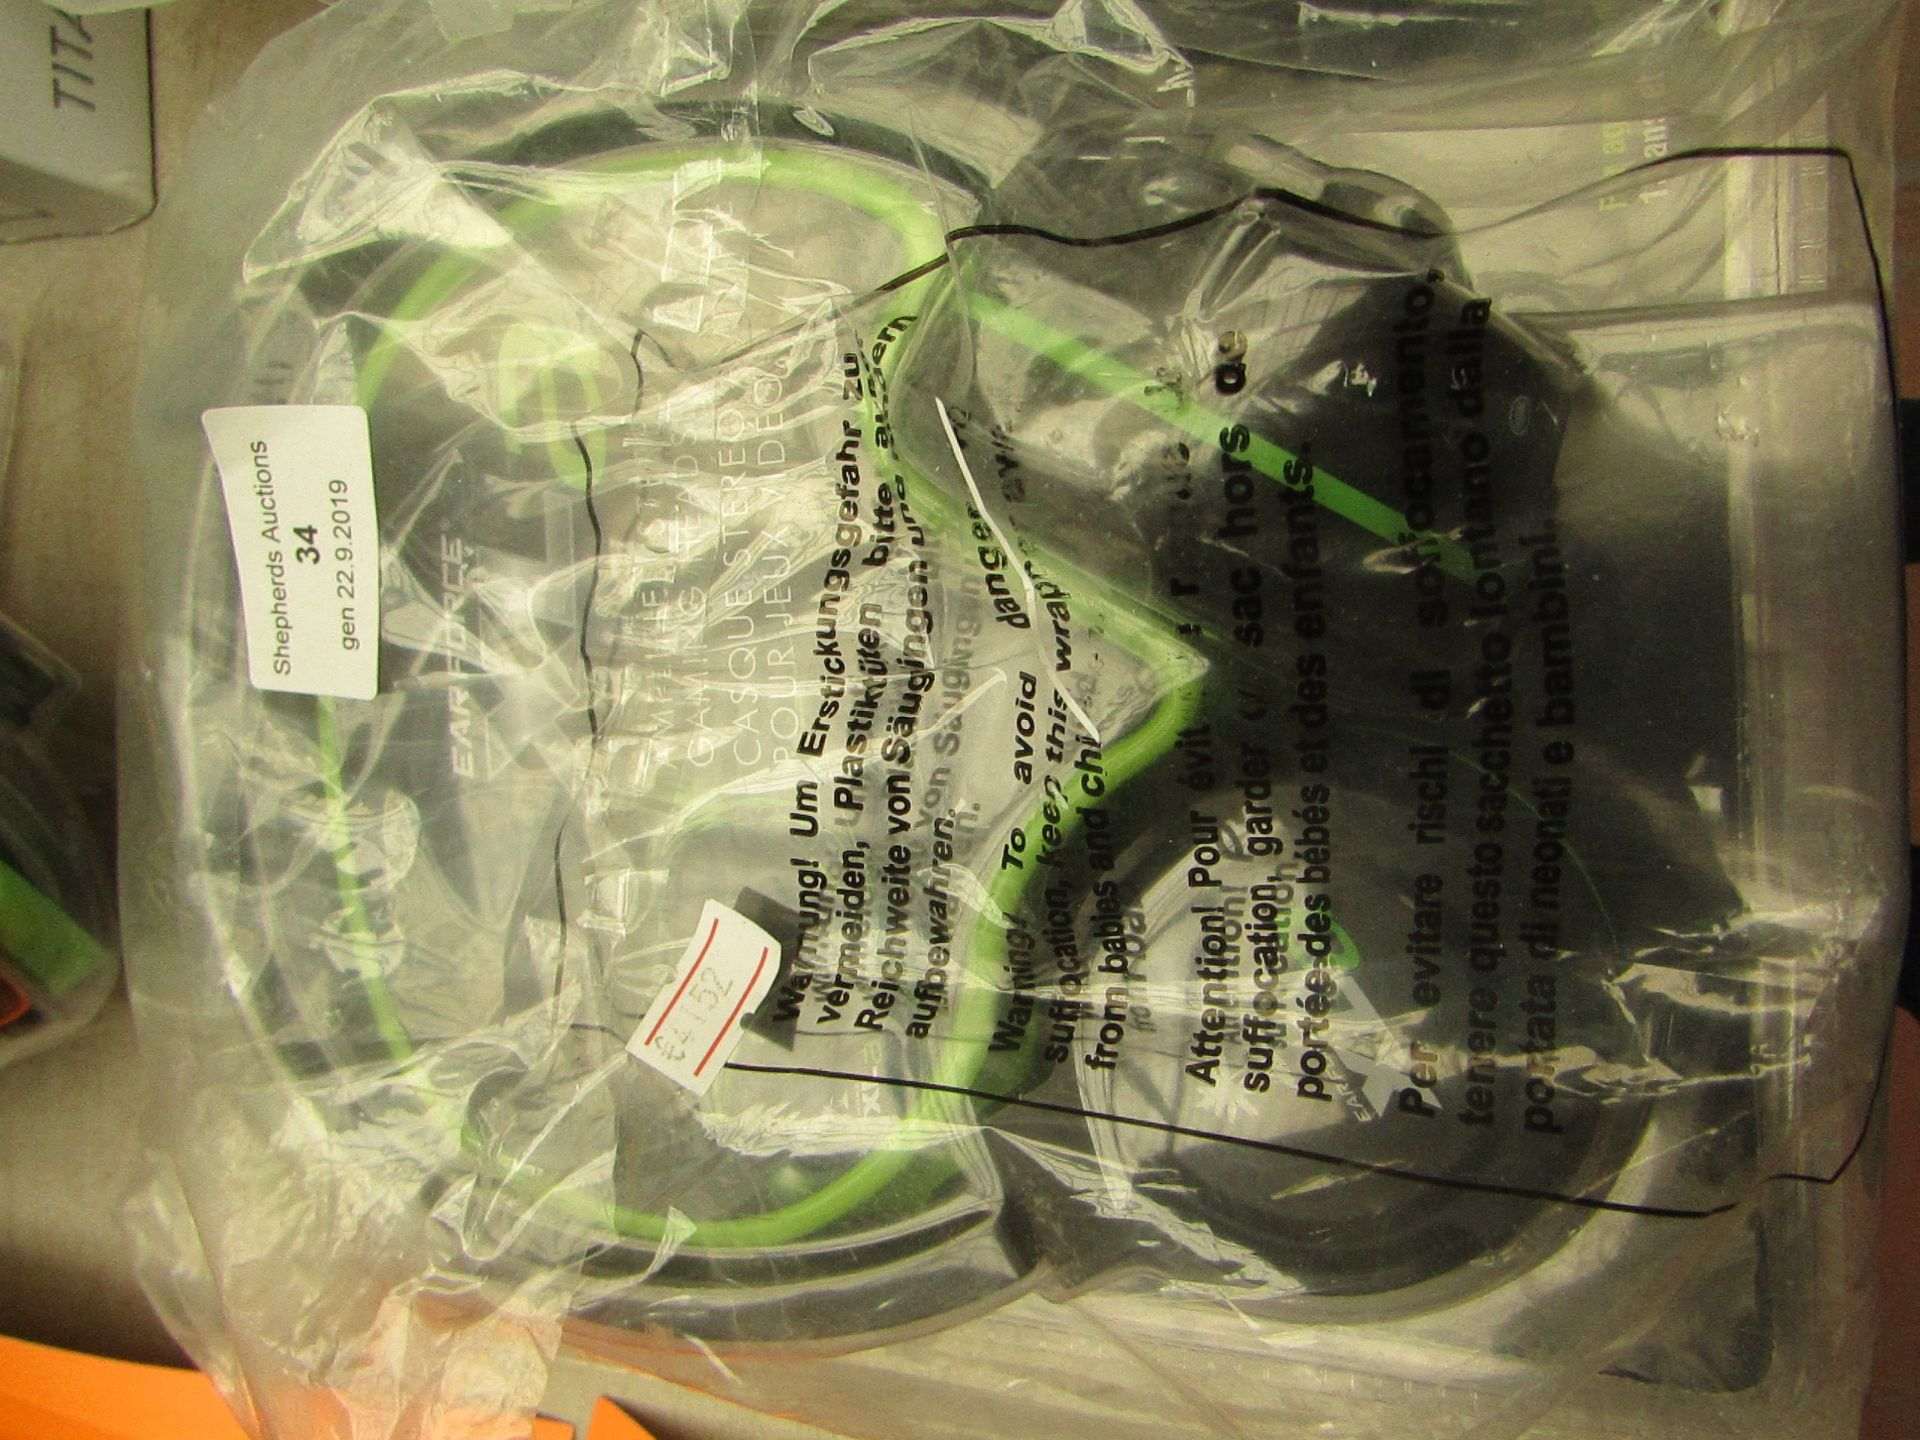 Lotto 34 - Turtle Beach XLA Amplified Stereo Gaming Headset - Xbox 360 Unchecked